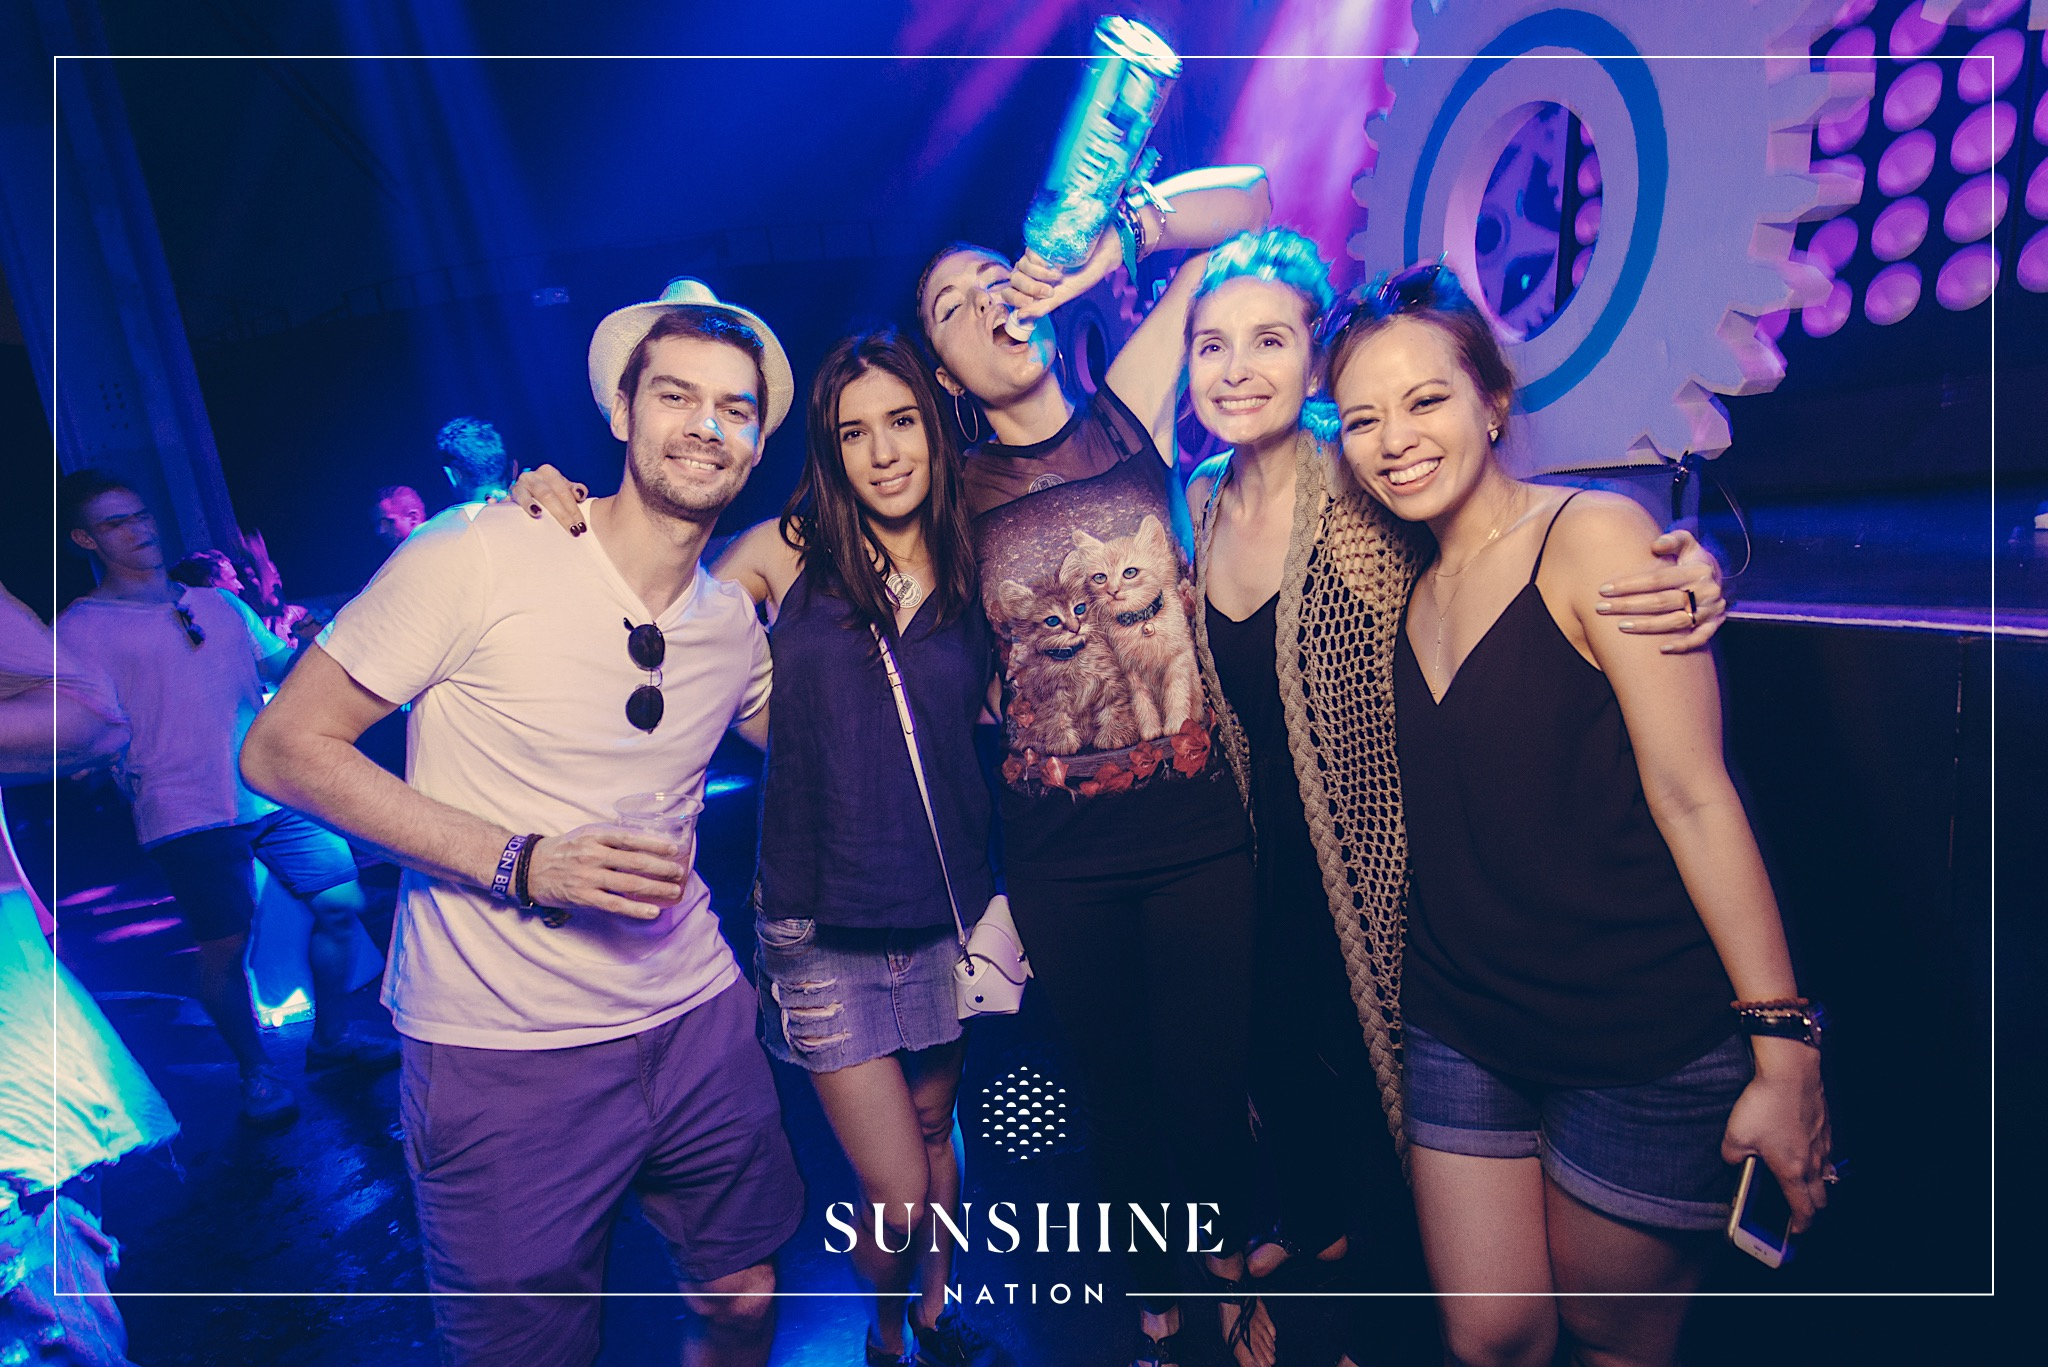 18022017_SunshineNation_Colossal053_Watermarked.jpg